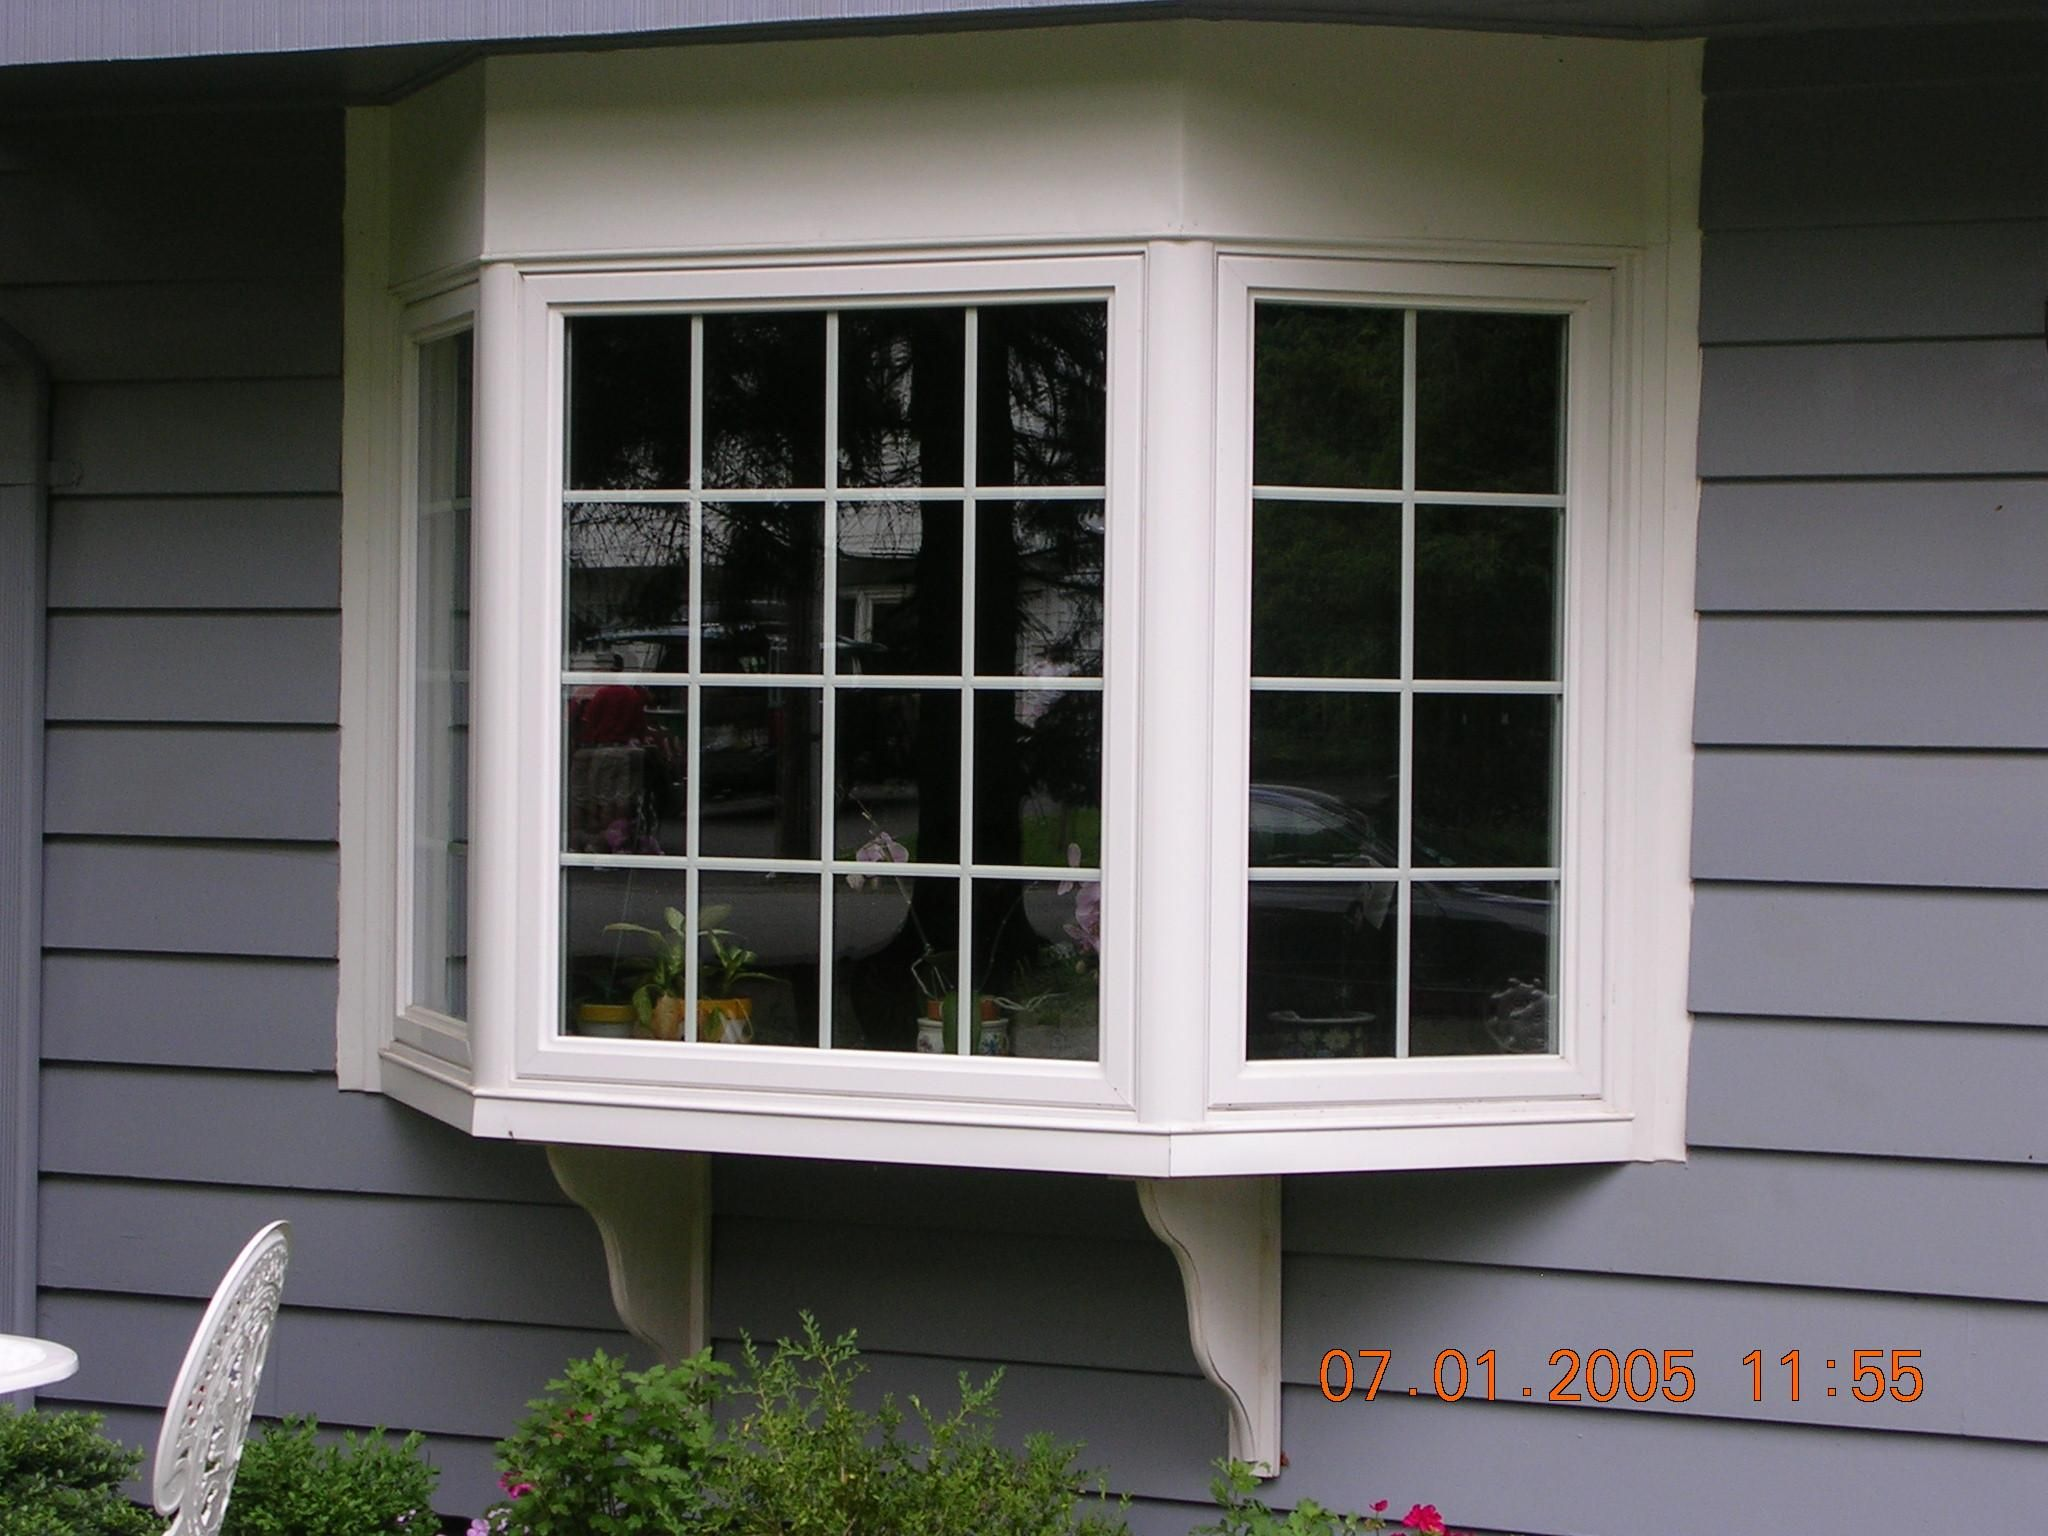 House windows frame design - Awesome White Wooden Window Frames Combine With Grey Wooden Wall Paneling For Bay Window Design Ideas Excellent Home Interior Remodeling Ideas